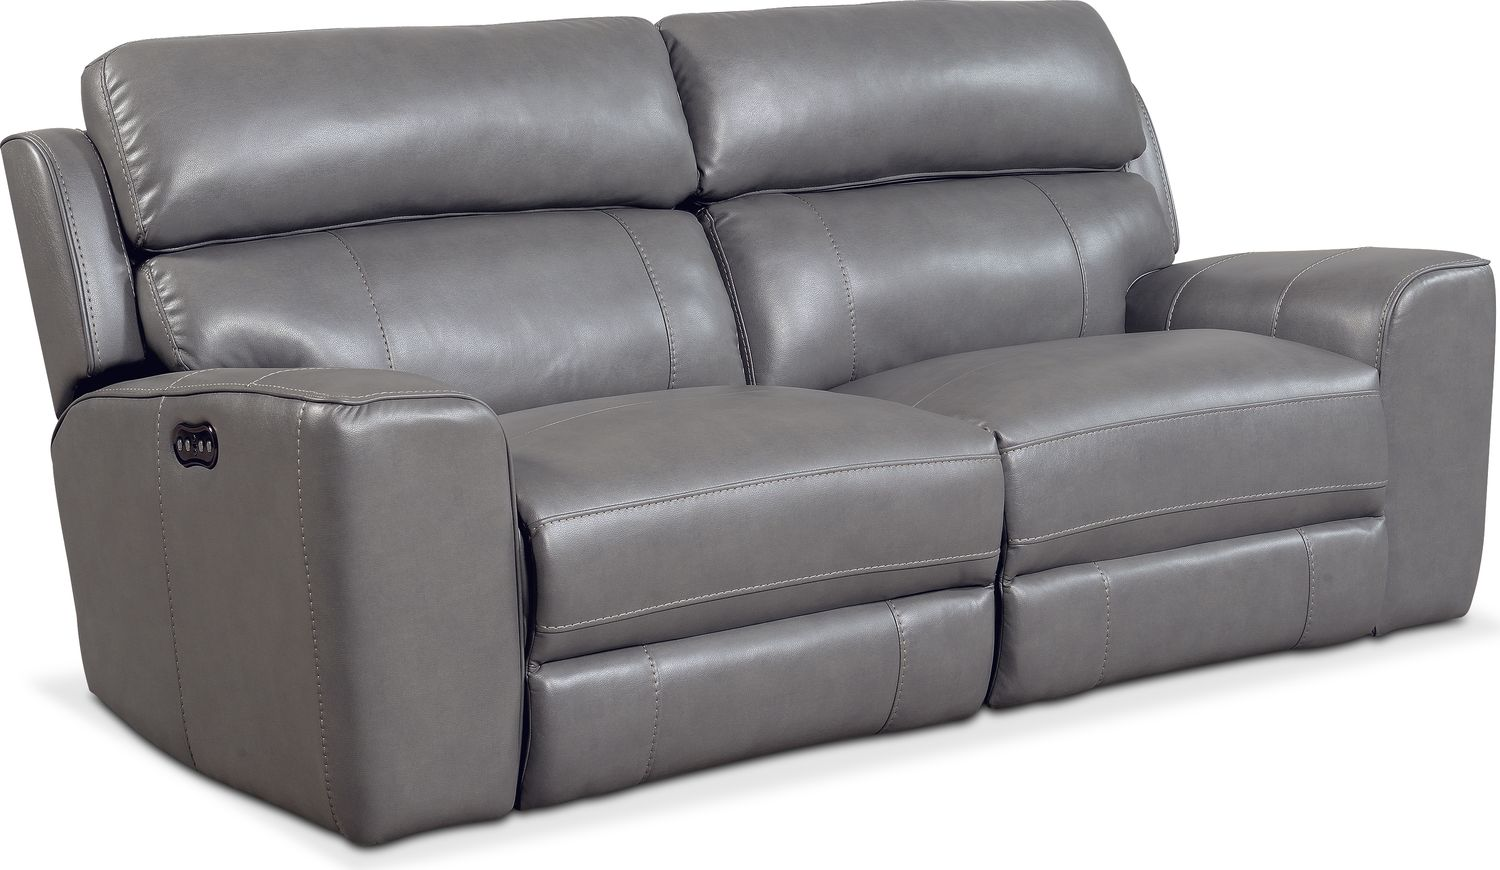 Exceptional Living Room Furniture   Newport 2 Piece Power Reclining Sofa   Gray